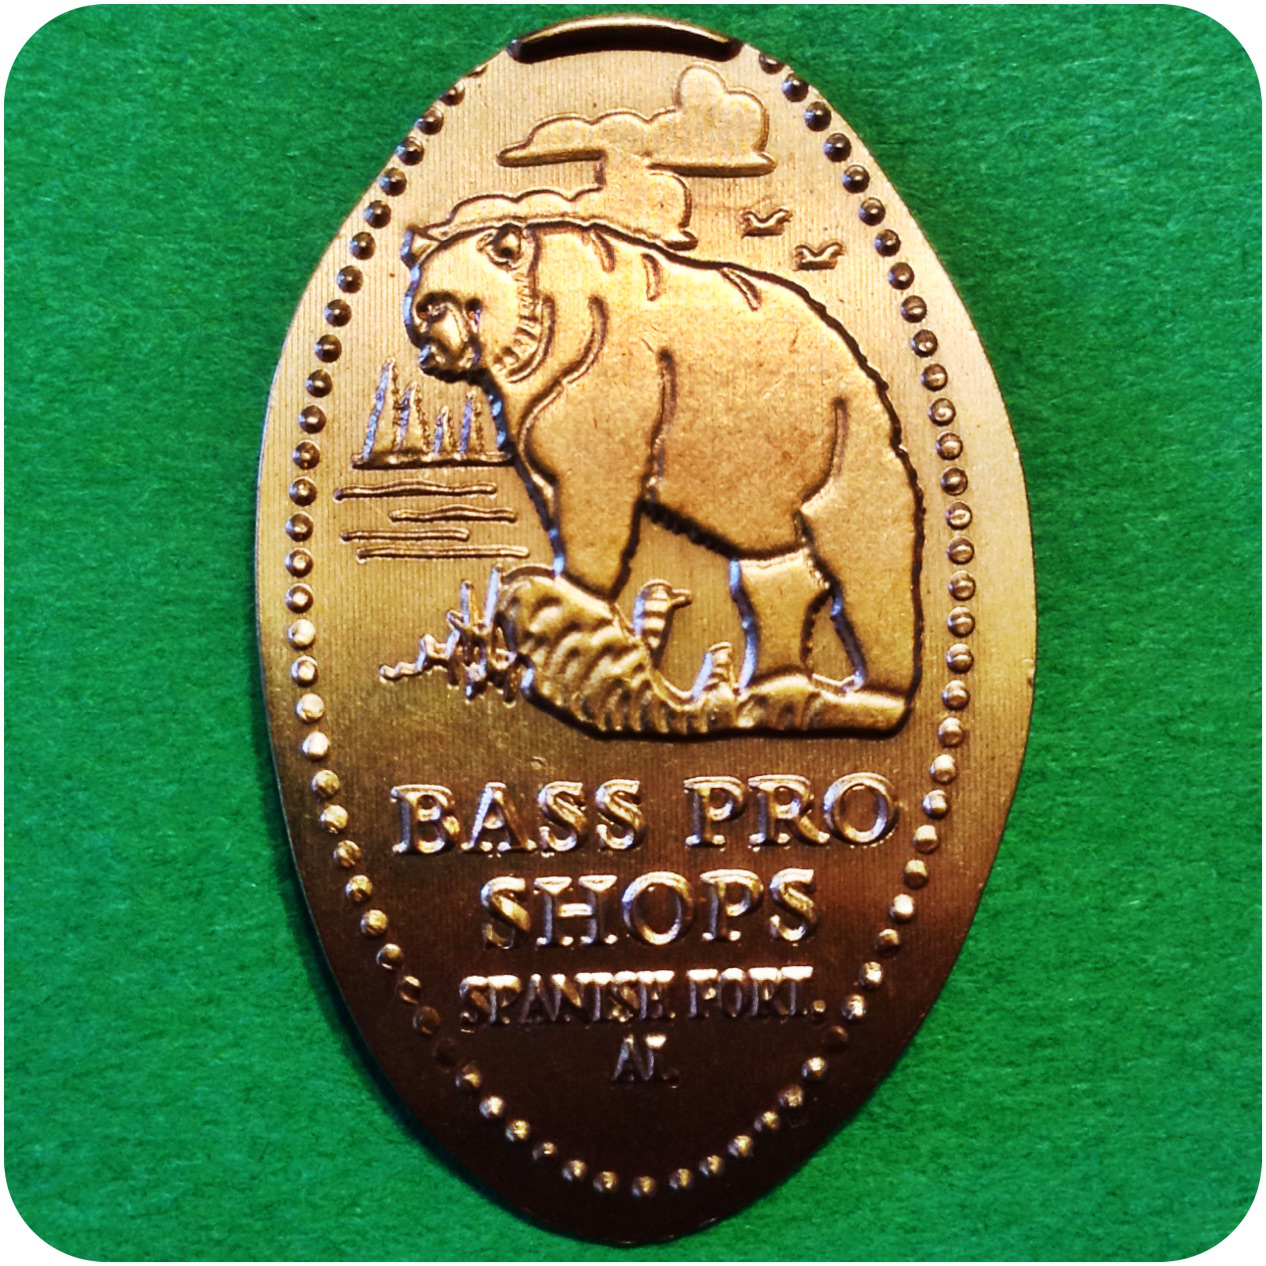 Black Bear, Bass Pro Shops, Spanish Fort, Alabama Elongated Smashed Copper Penny